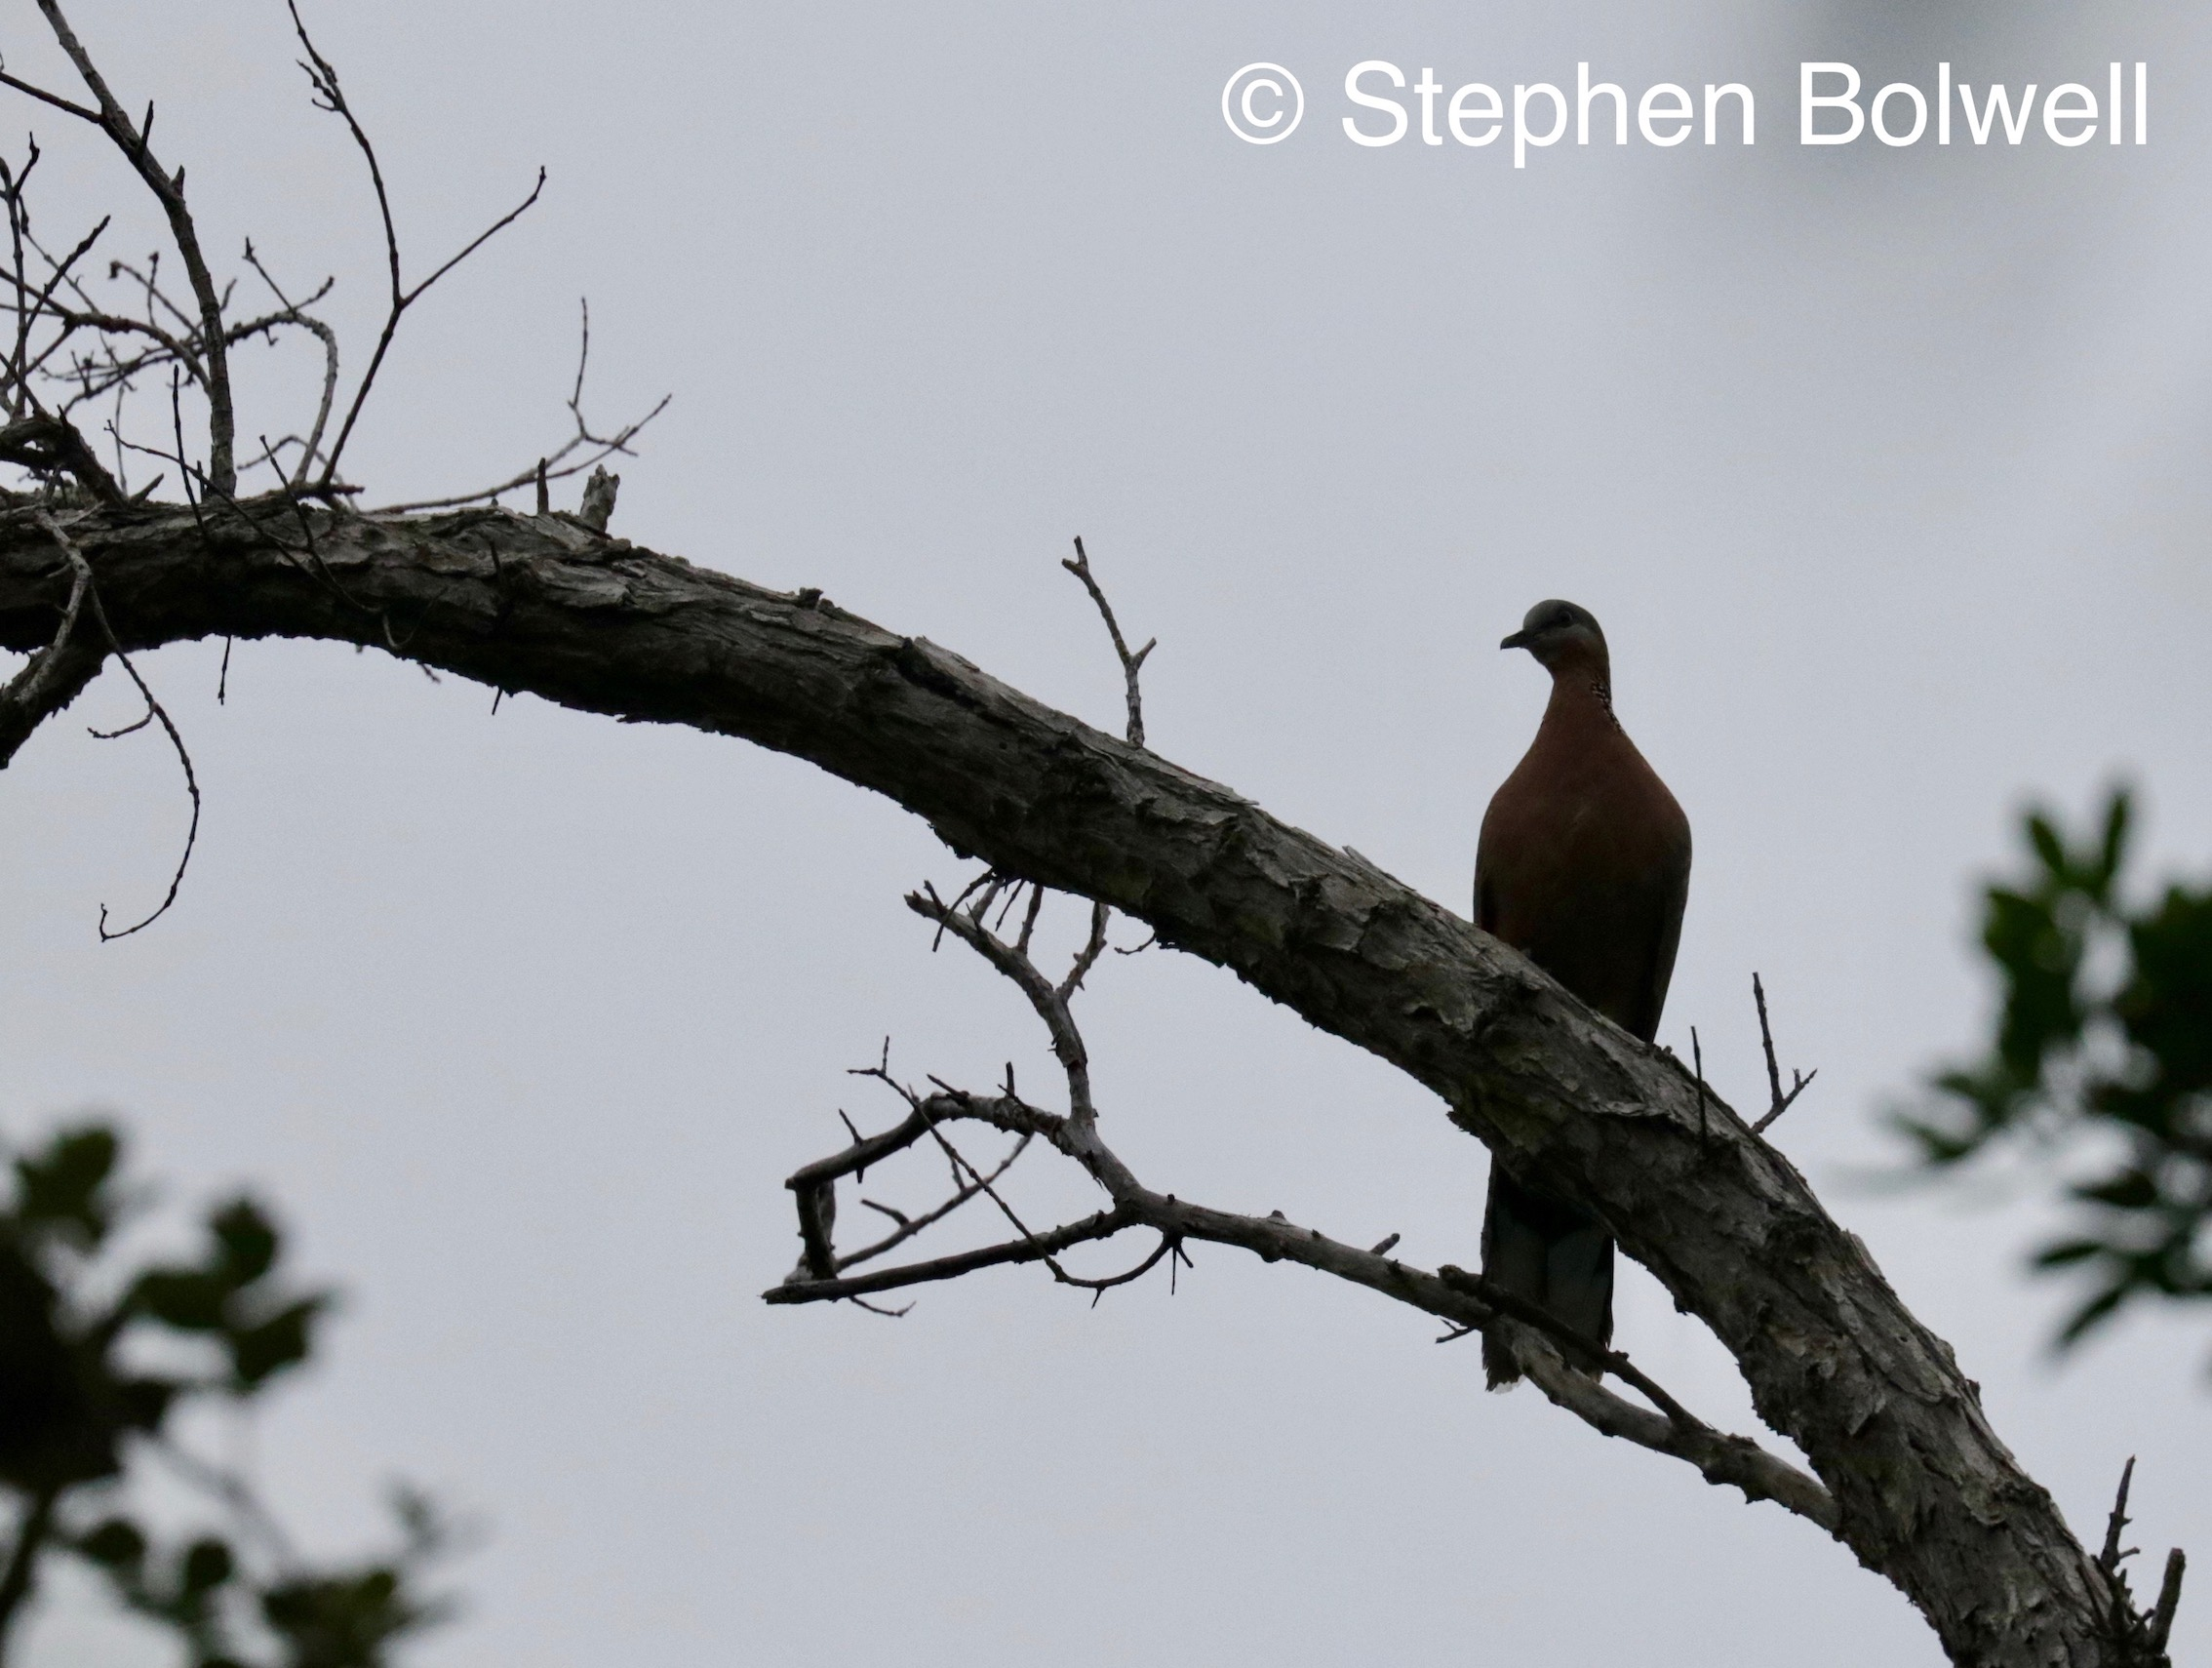 A spotted dove I think in the forest - taken to demonstrate the vog skies that make bird photography impossible